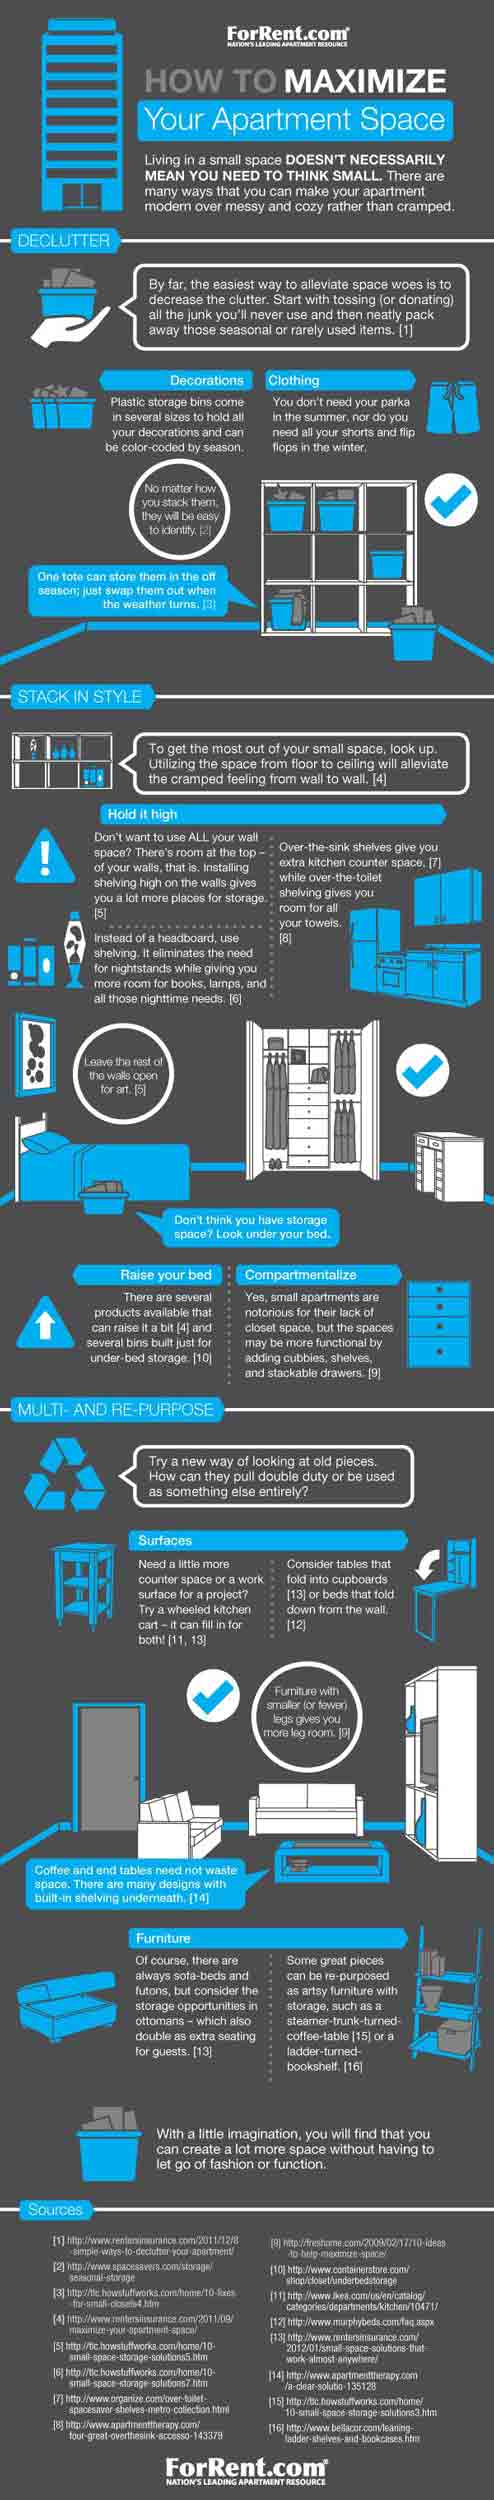 How-to-Maximize-Your-Apartment-Space